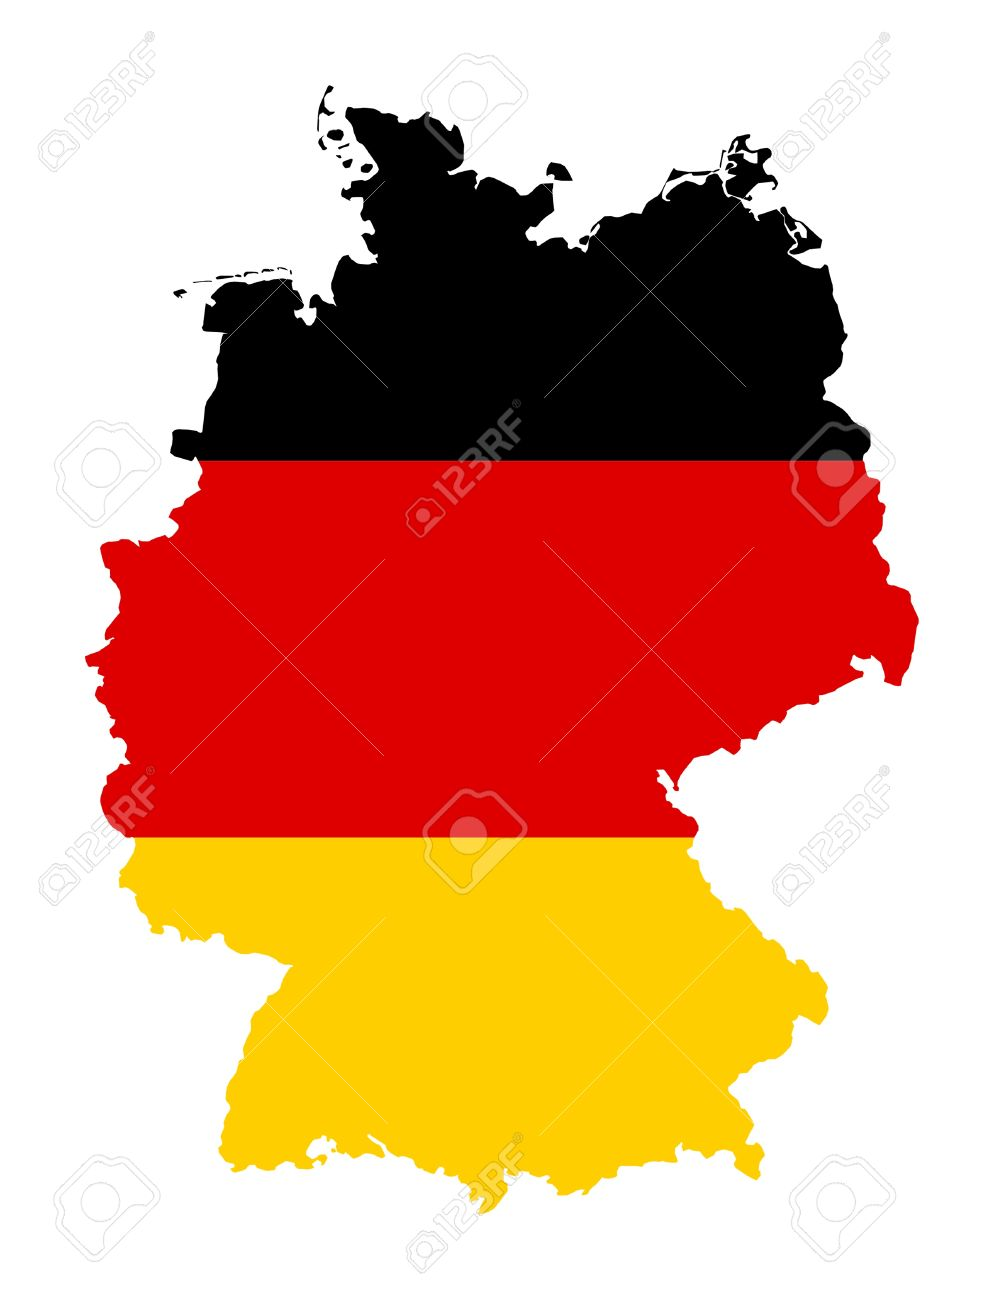 Illustration of Germany flag on map of country; isolated on white background. - 9320543